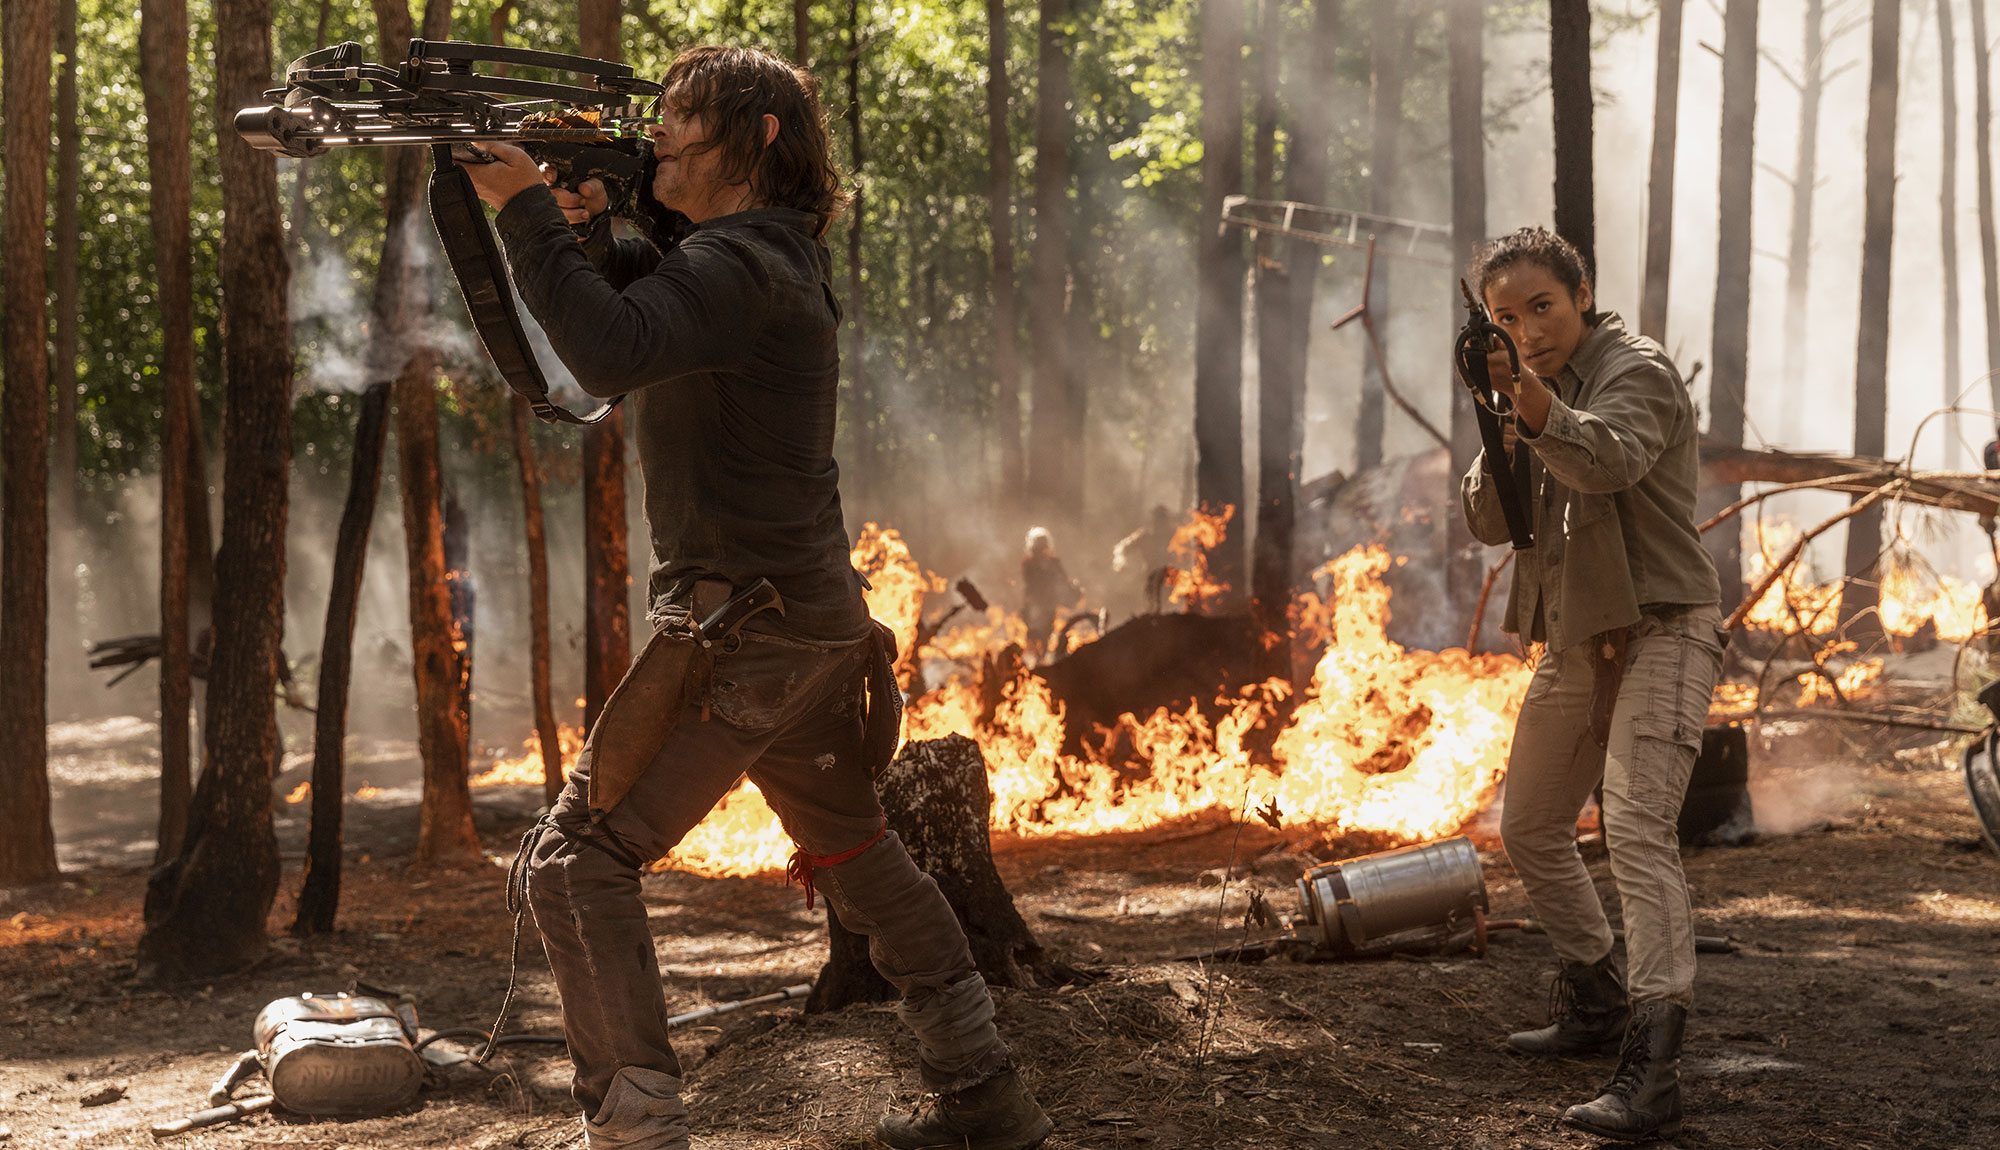 Daryl & The Gang Team Up To Extinguish Flames and Walkers in Episode 1001 Scene